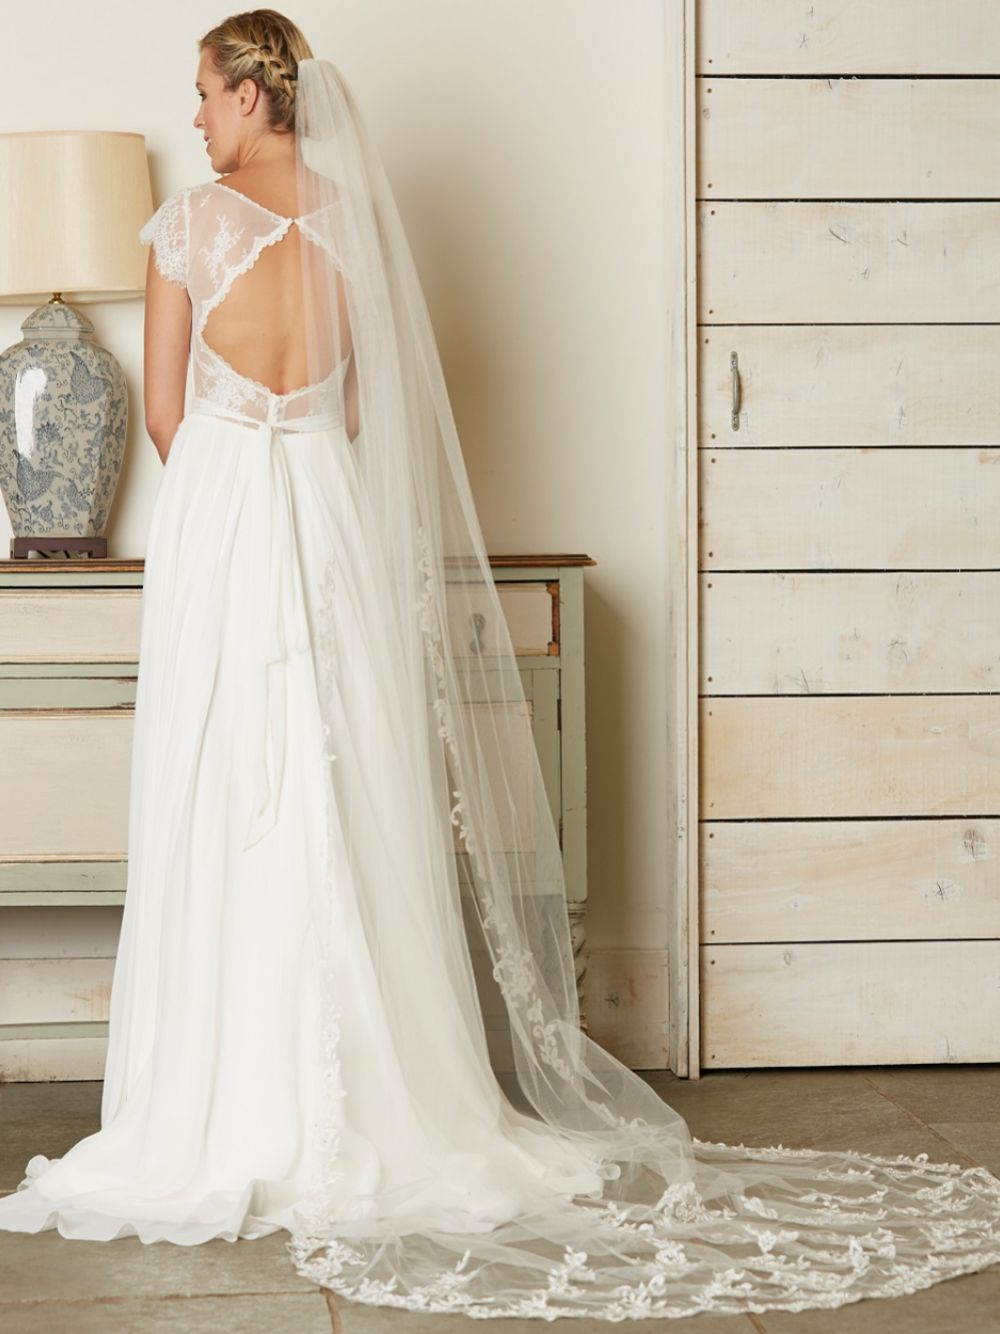 Linzi Jay Single Tier Ivory Cathedral Veil with Beaded Lace Motifs V741